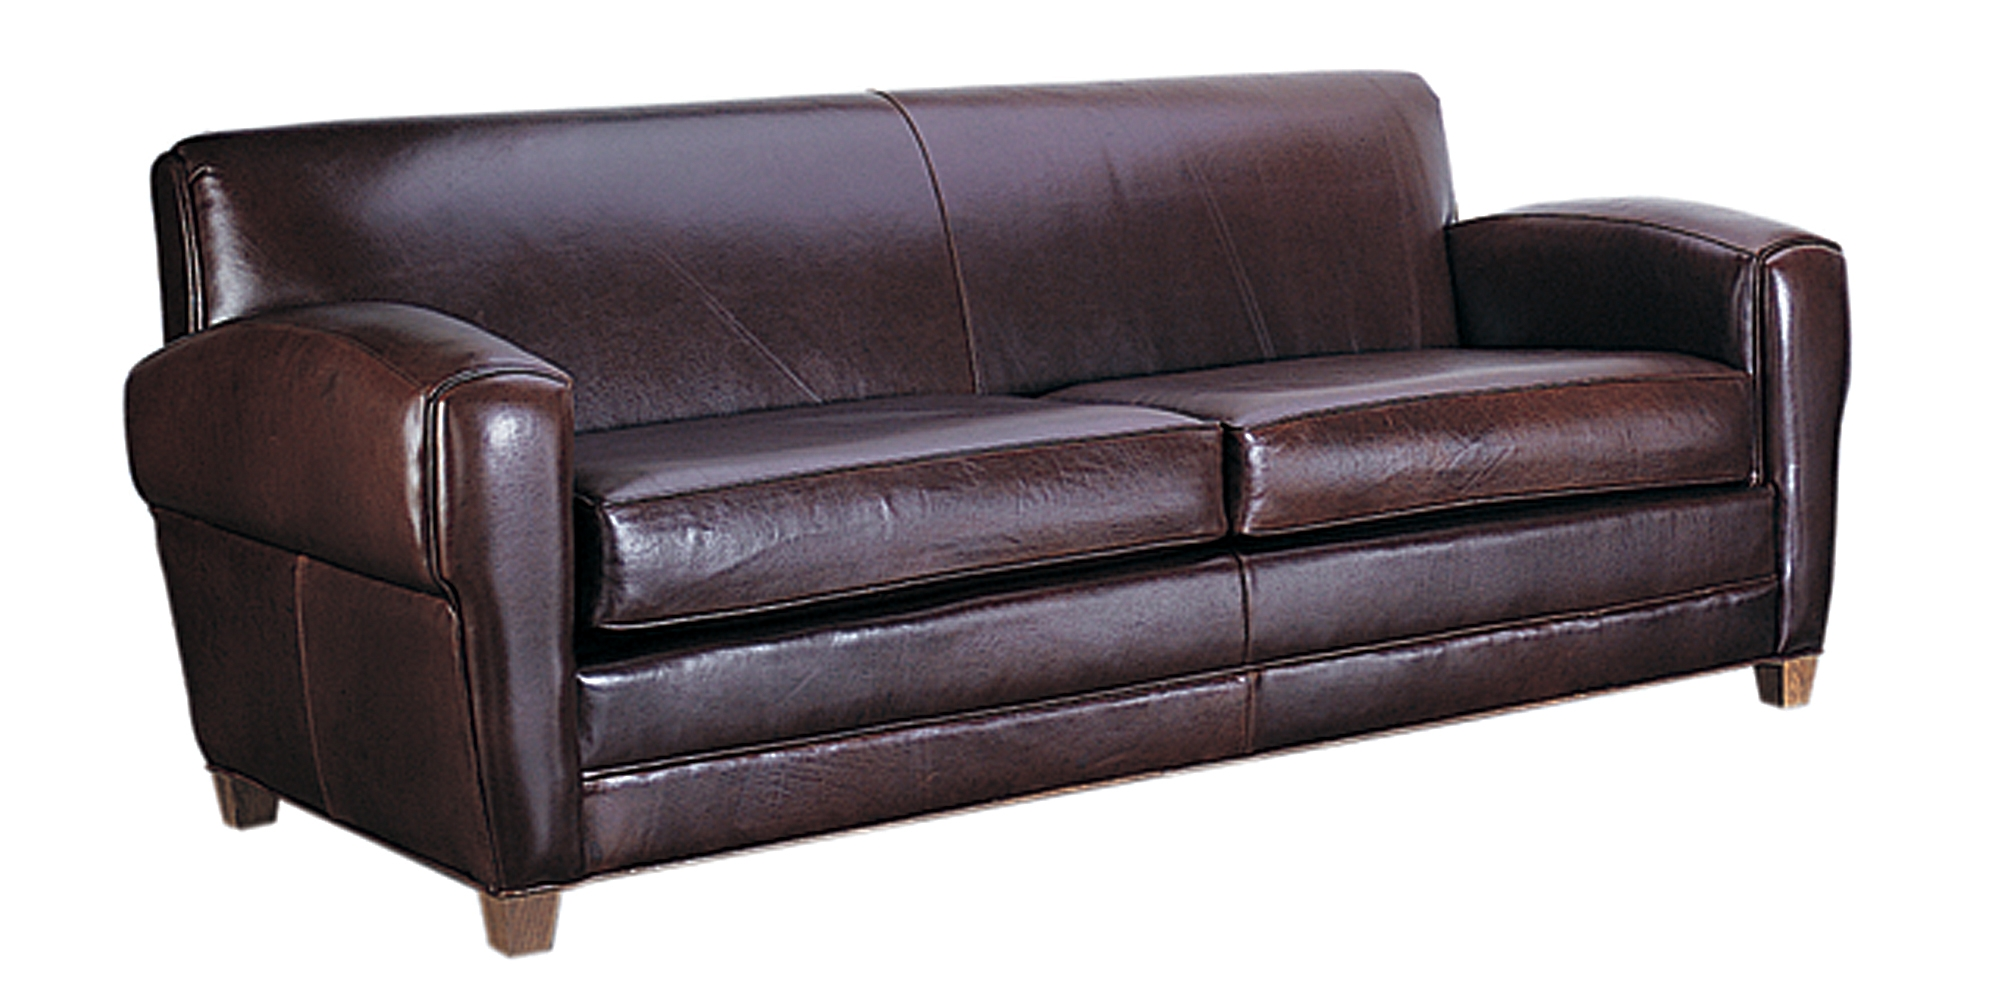 Paris Art Deco Low Profile Italian Leather Sofa With Two Seats Throughout Art Deco Sofa And Chairs (Image 14 of 15)